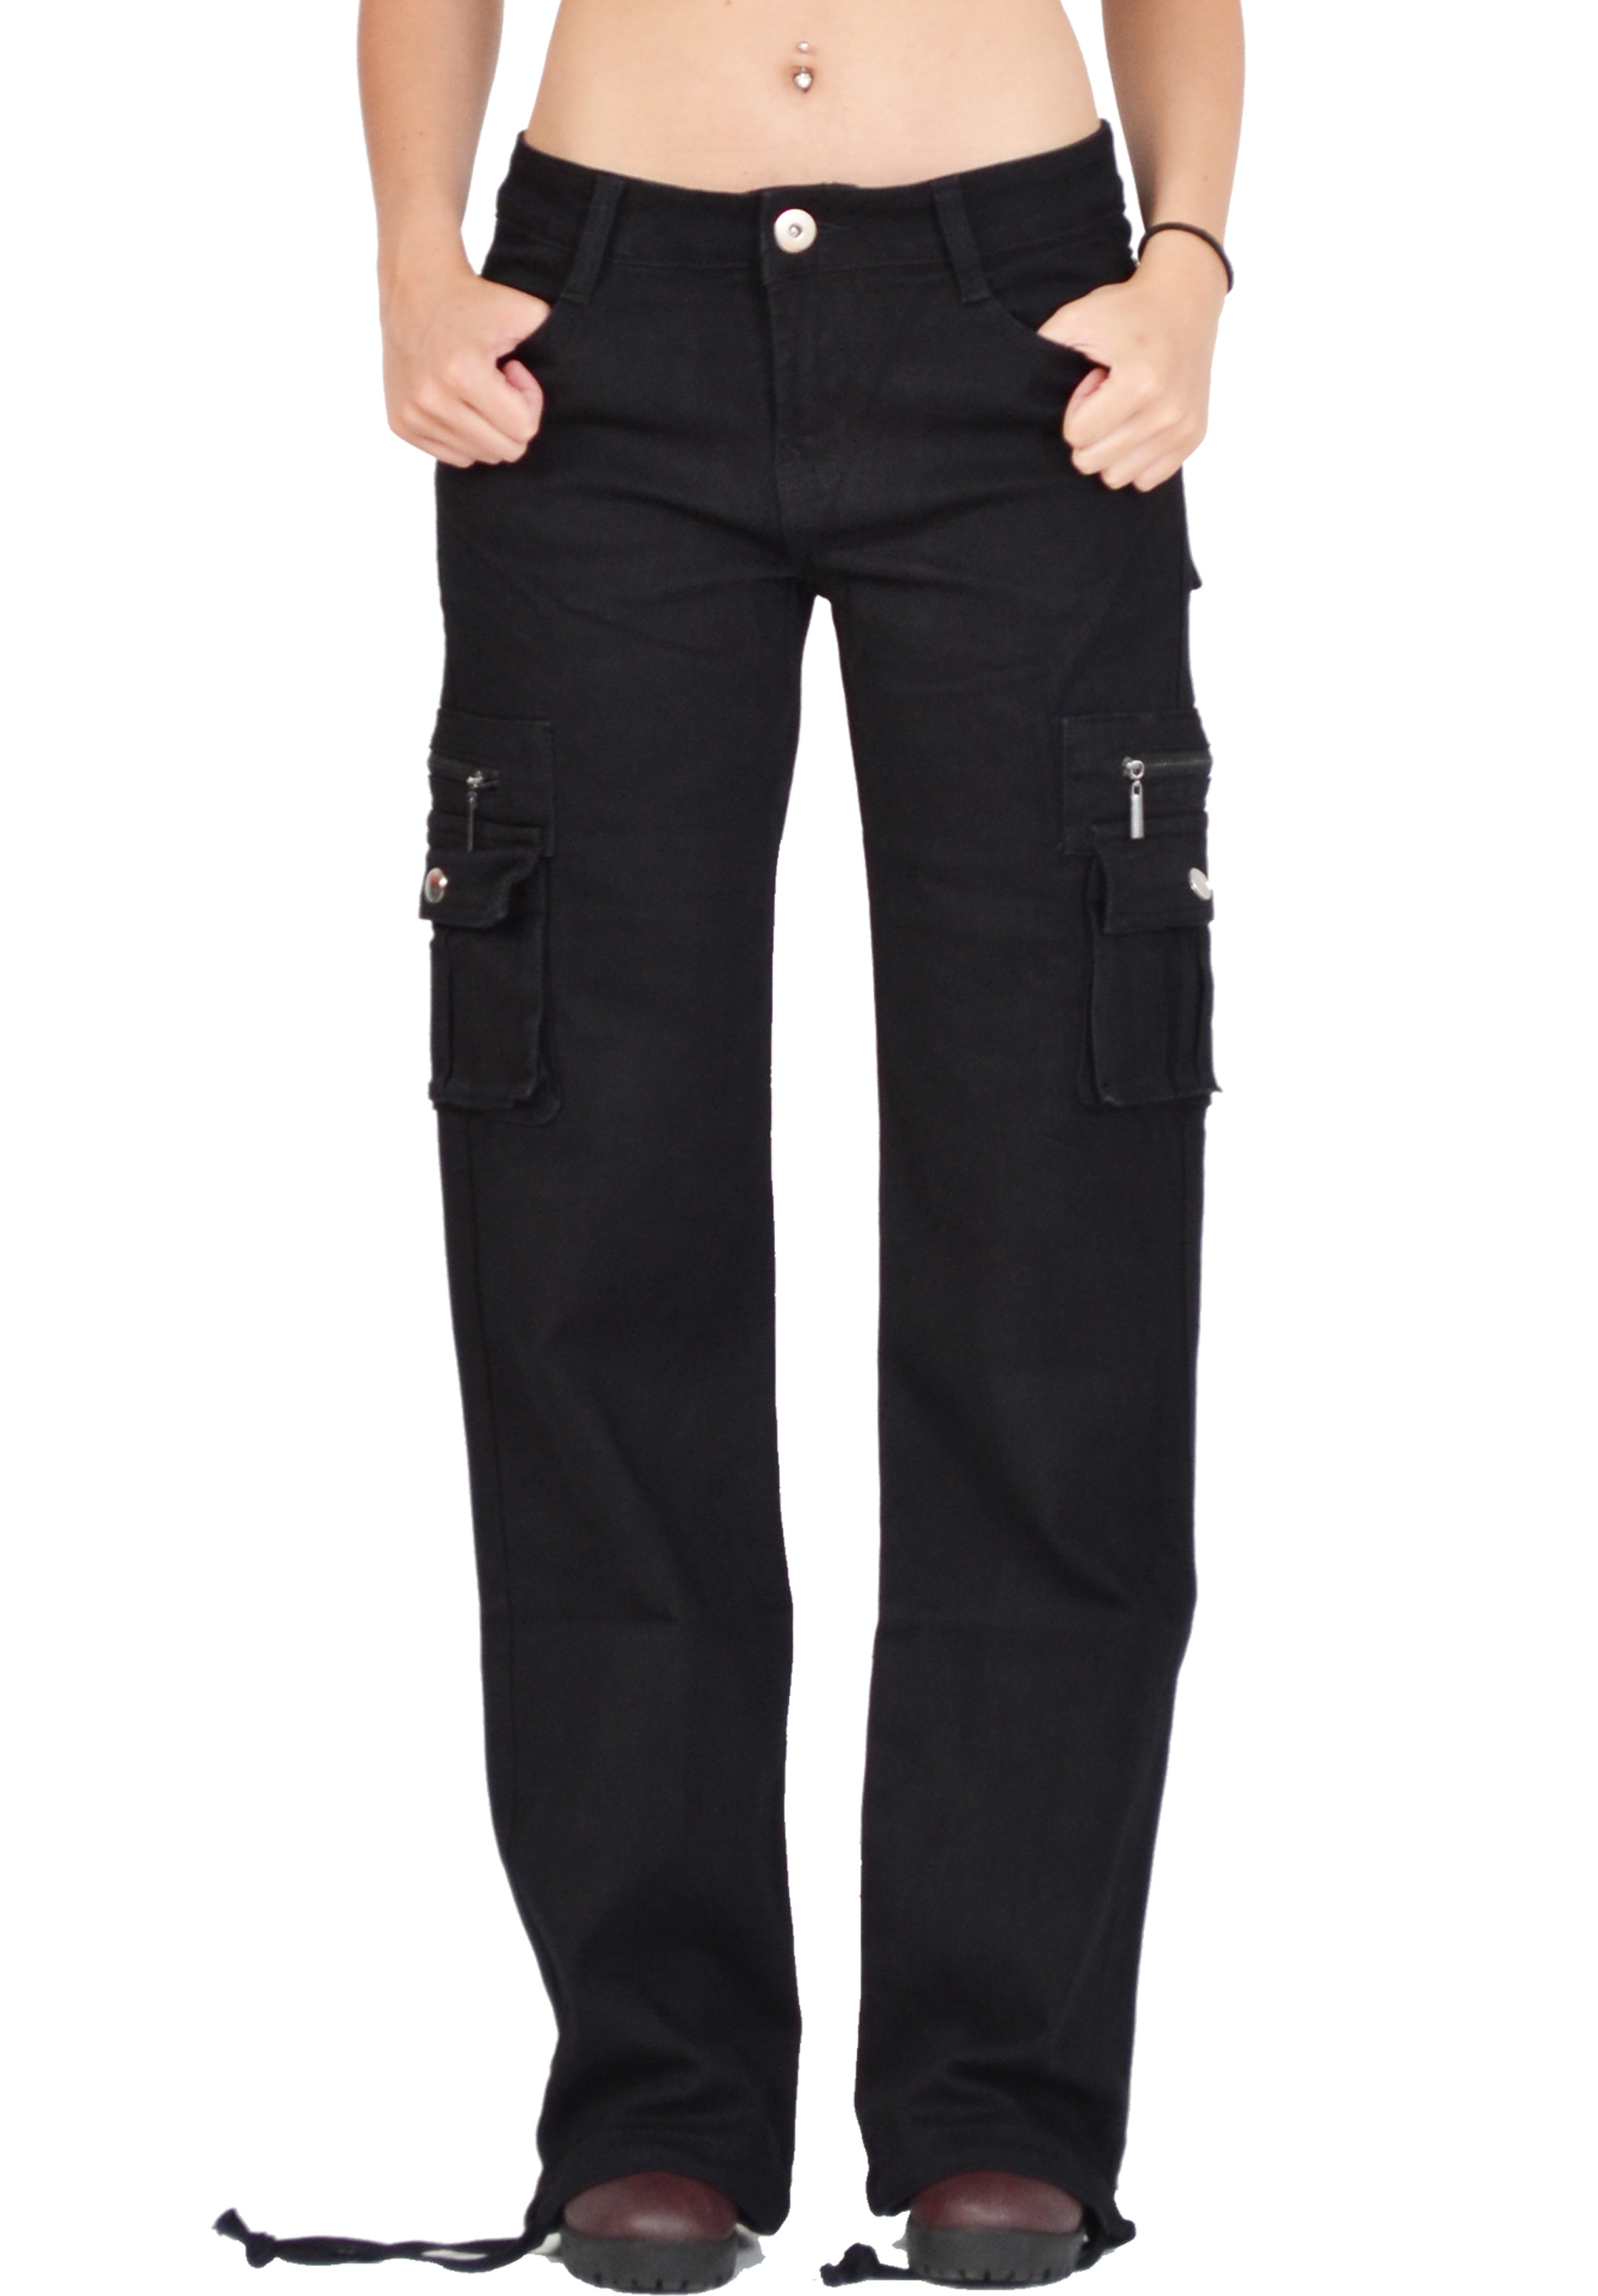 women s black pants for workwomen black pants photo - 1